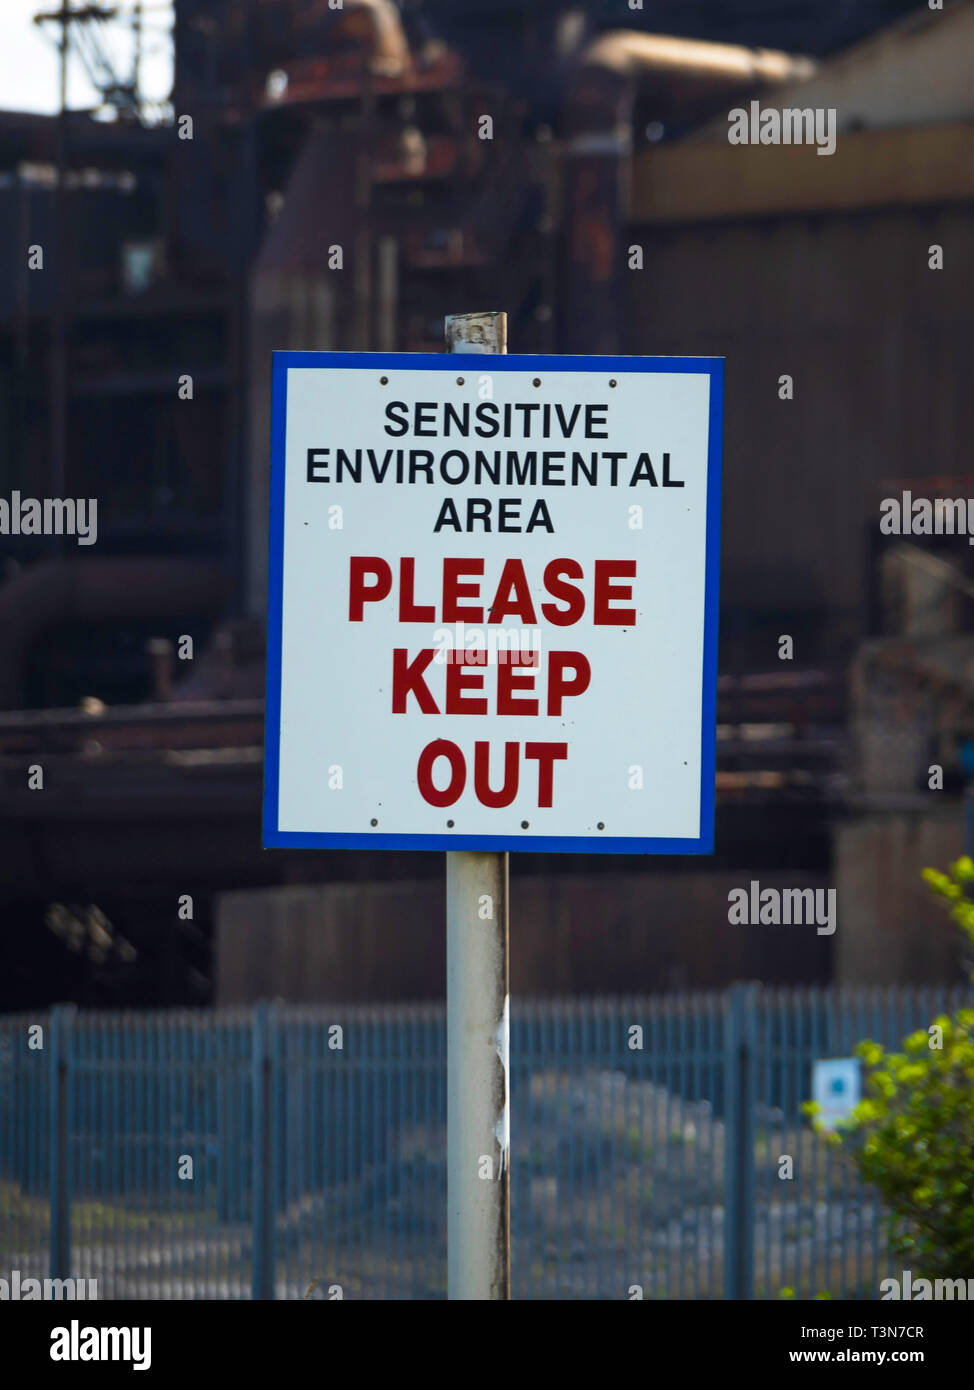 A warning sign for a Sensitive Environmental Area Please Keep Out   erected outside the now disused steel making blast furnace plant in Redcar  North  Stock Photo